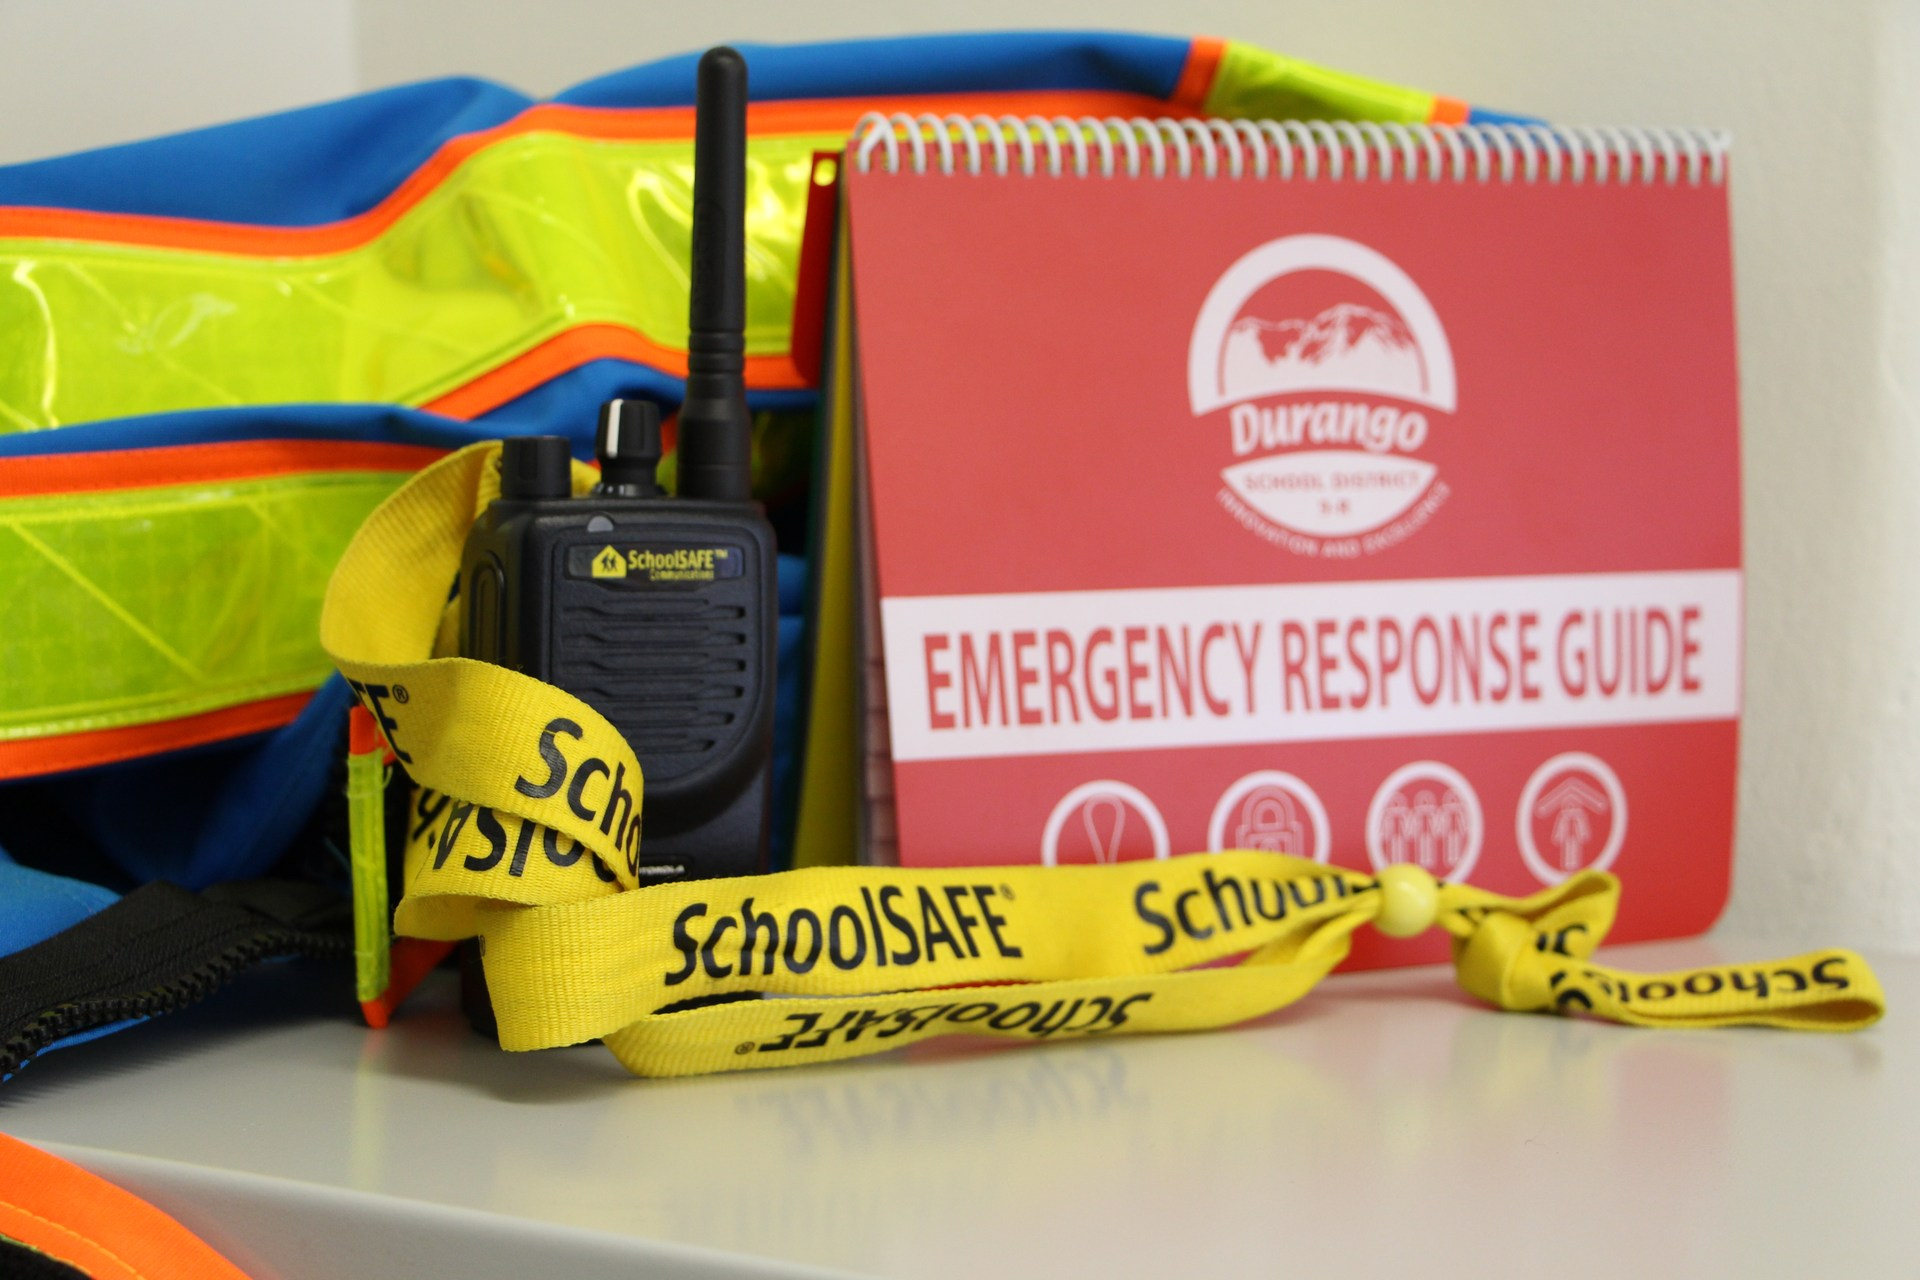 Image of safety items, including radio, vest and EOP guide